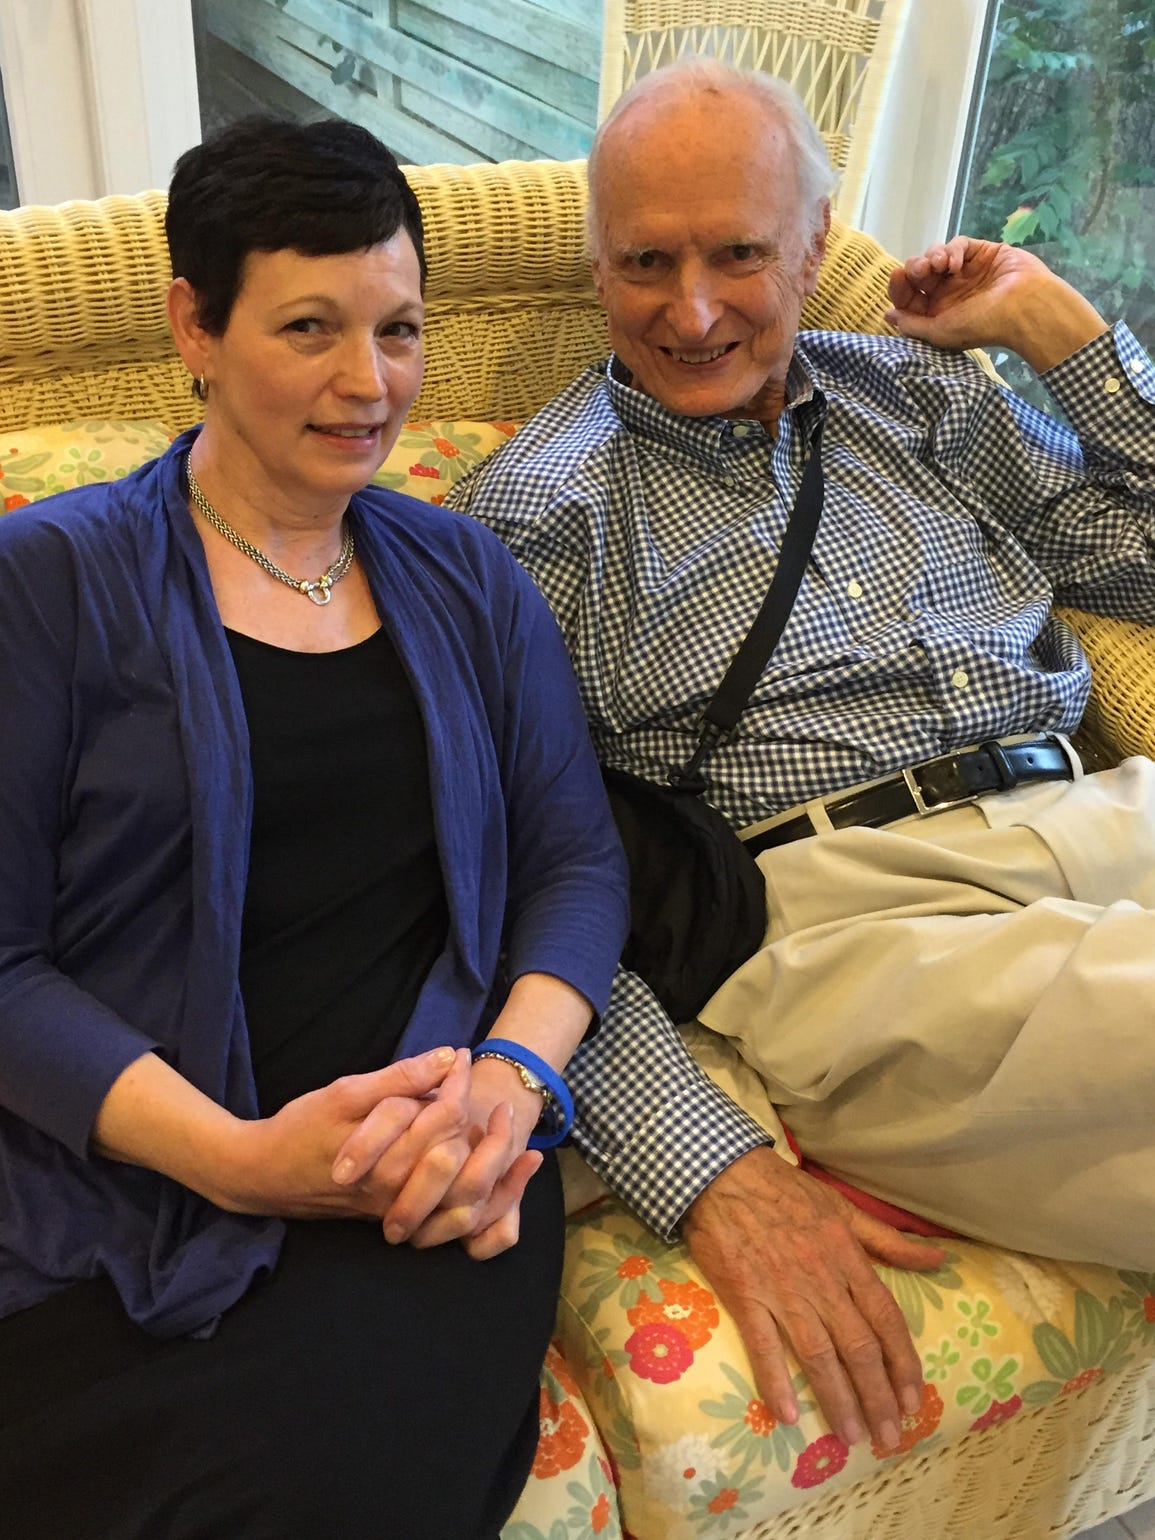 Beverly and Bill Hudnut on June 12, 2015.